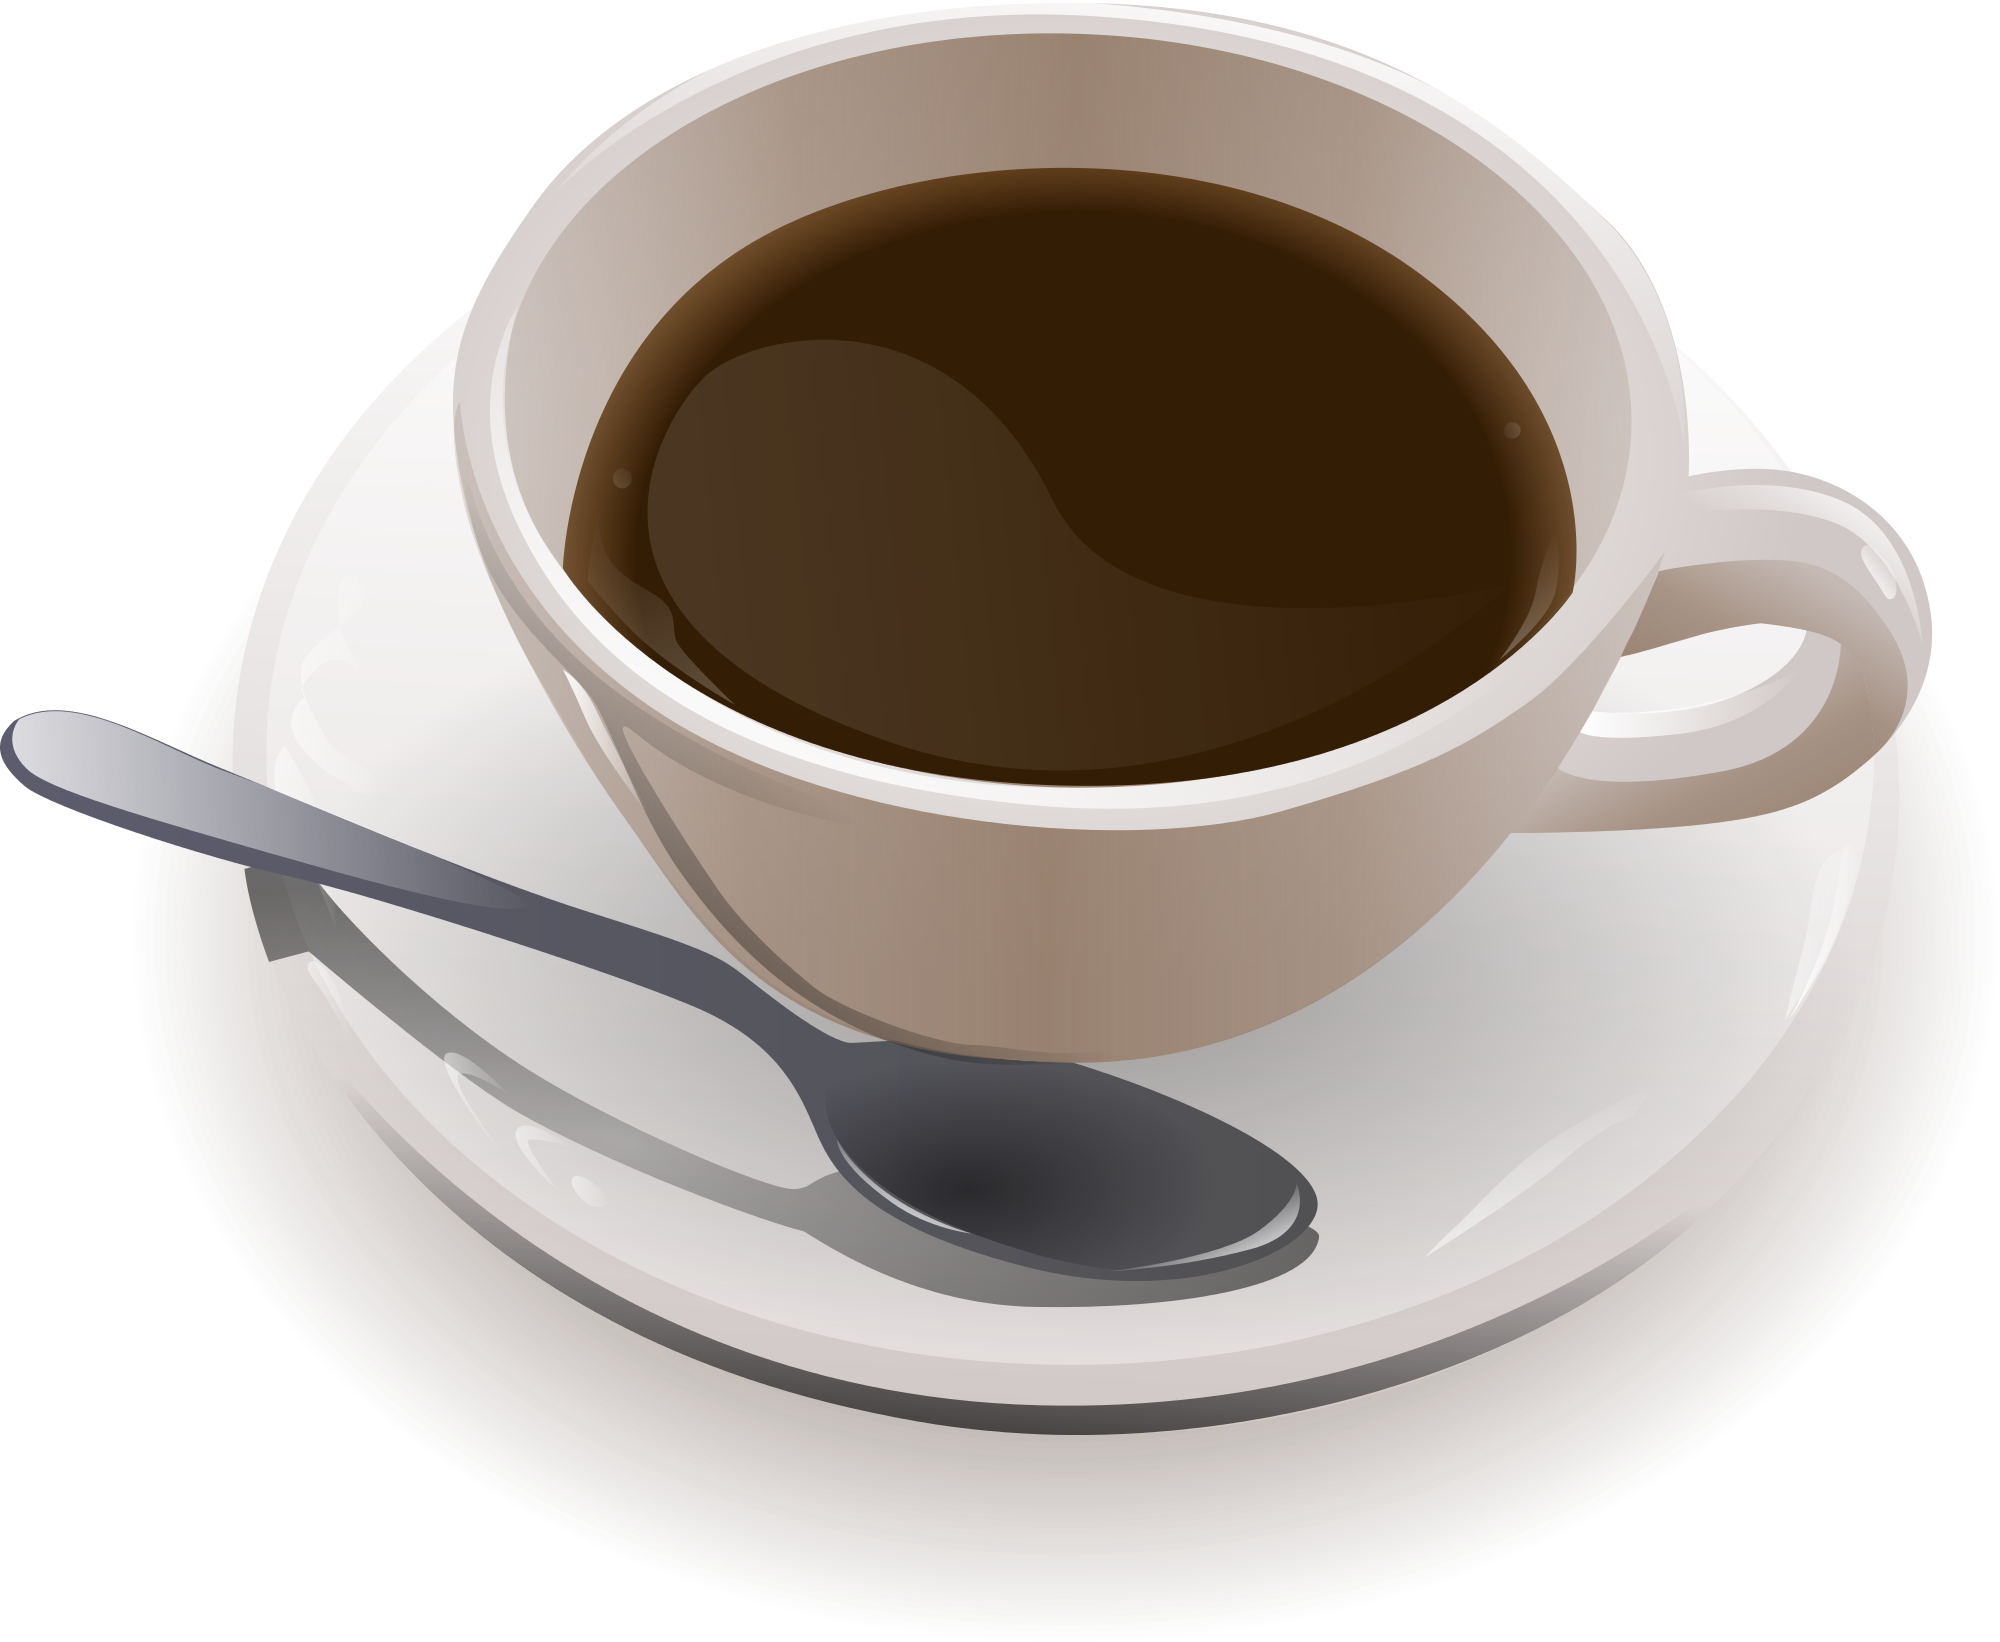 image freeuse download transparent coffee simple #105459566